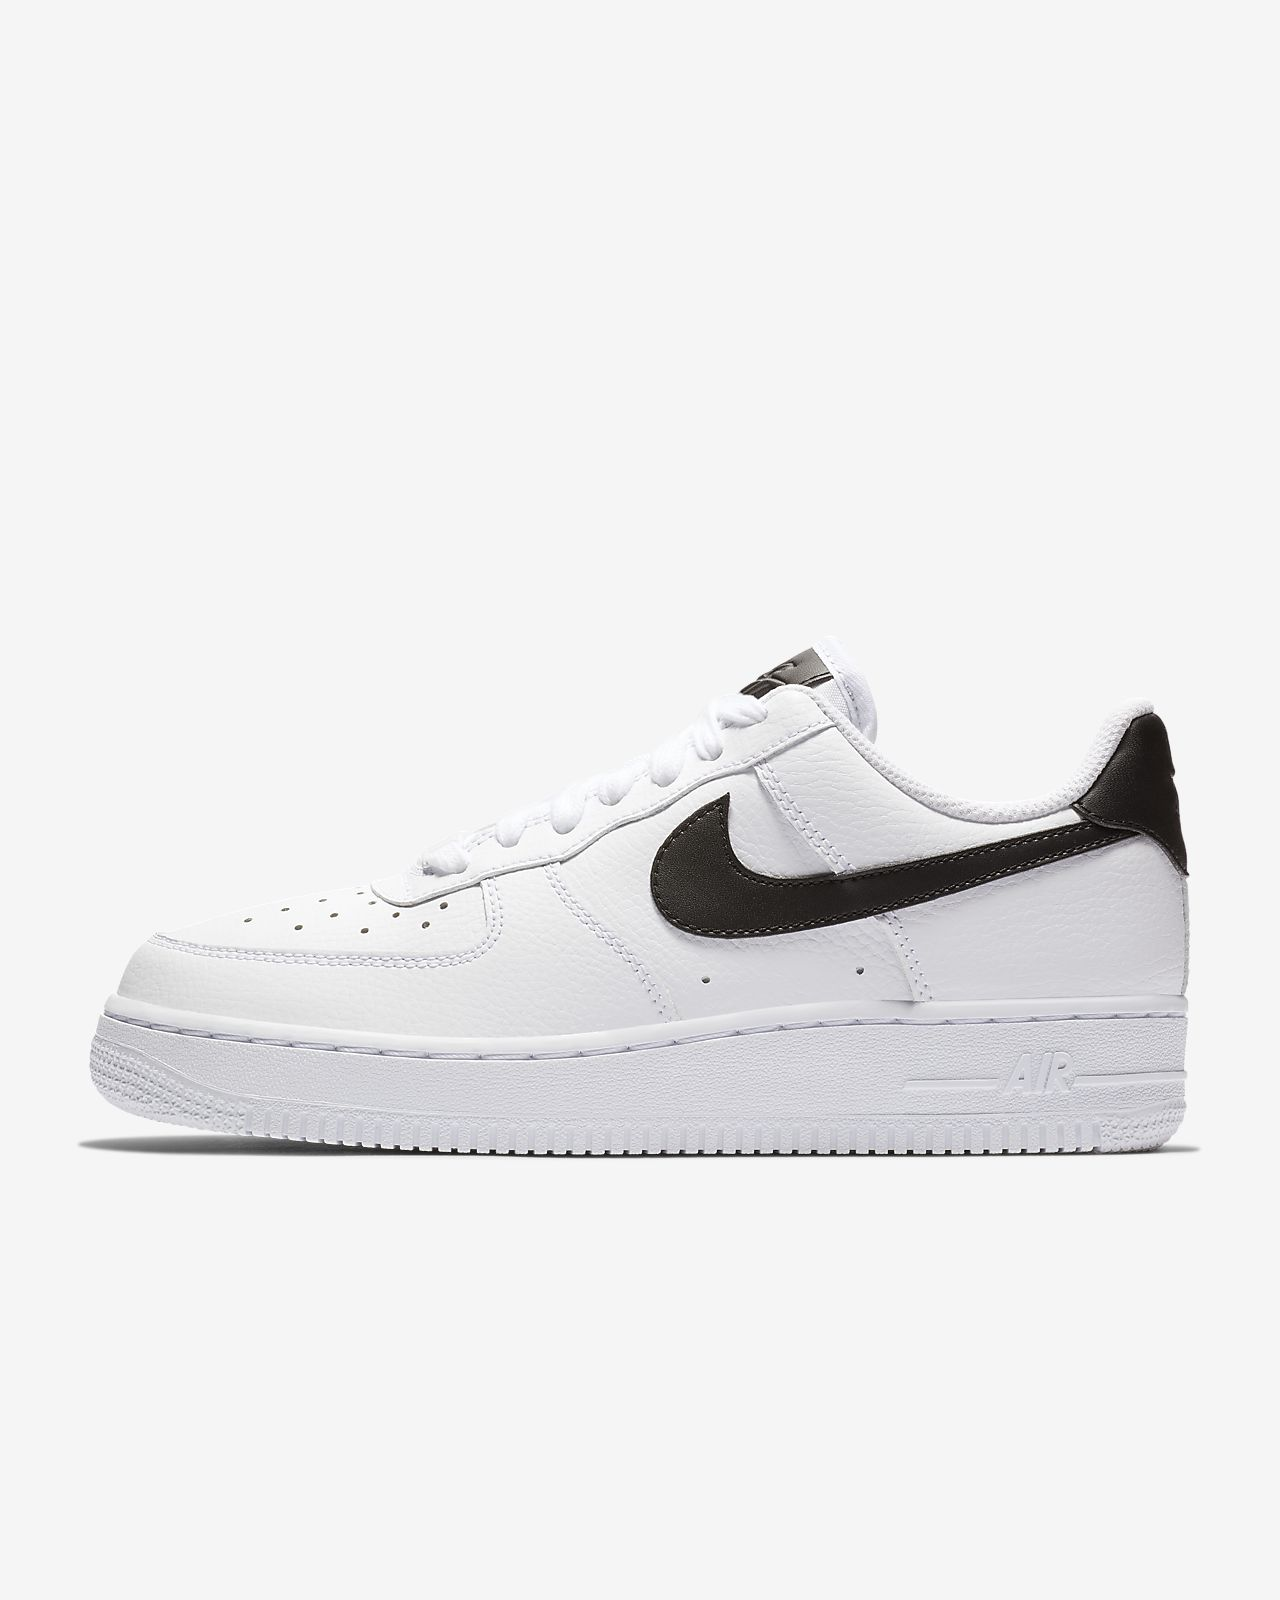 Nike Air Force 1 White Stud | Find the best Nike Air Force 1